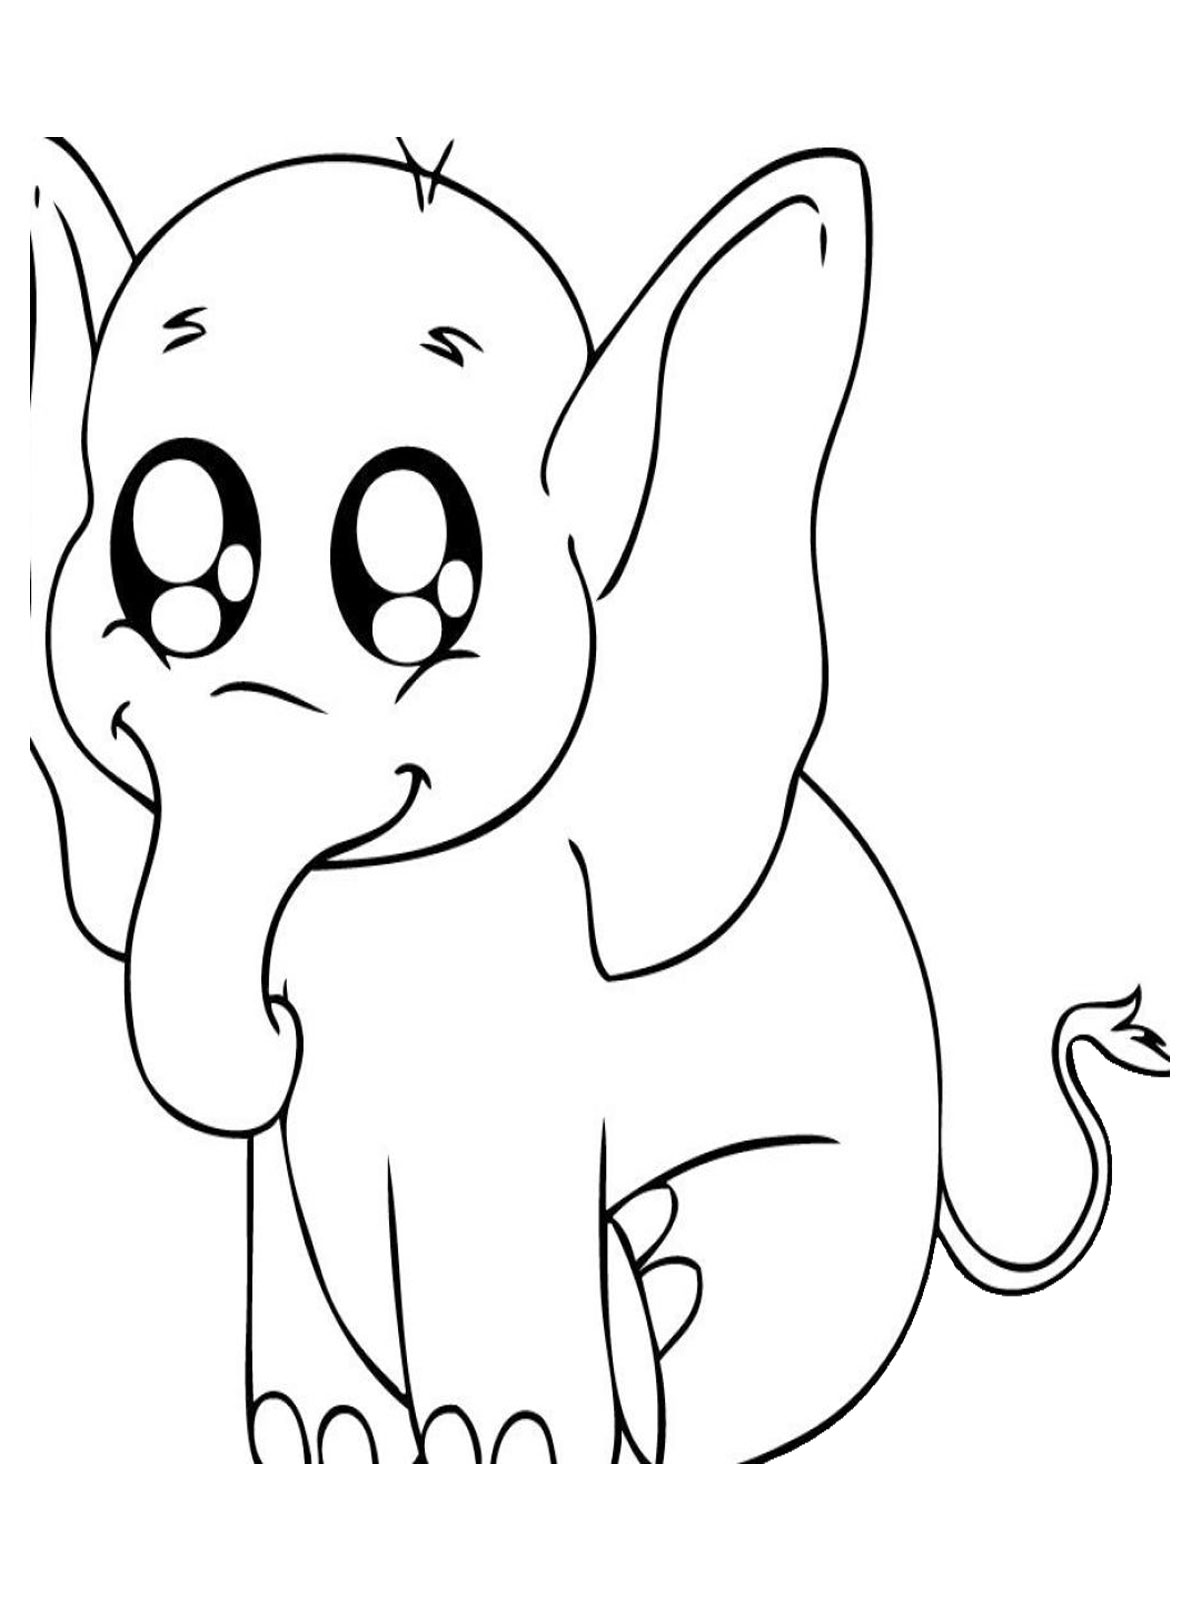 coloring pages baby animals - photo#13